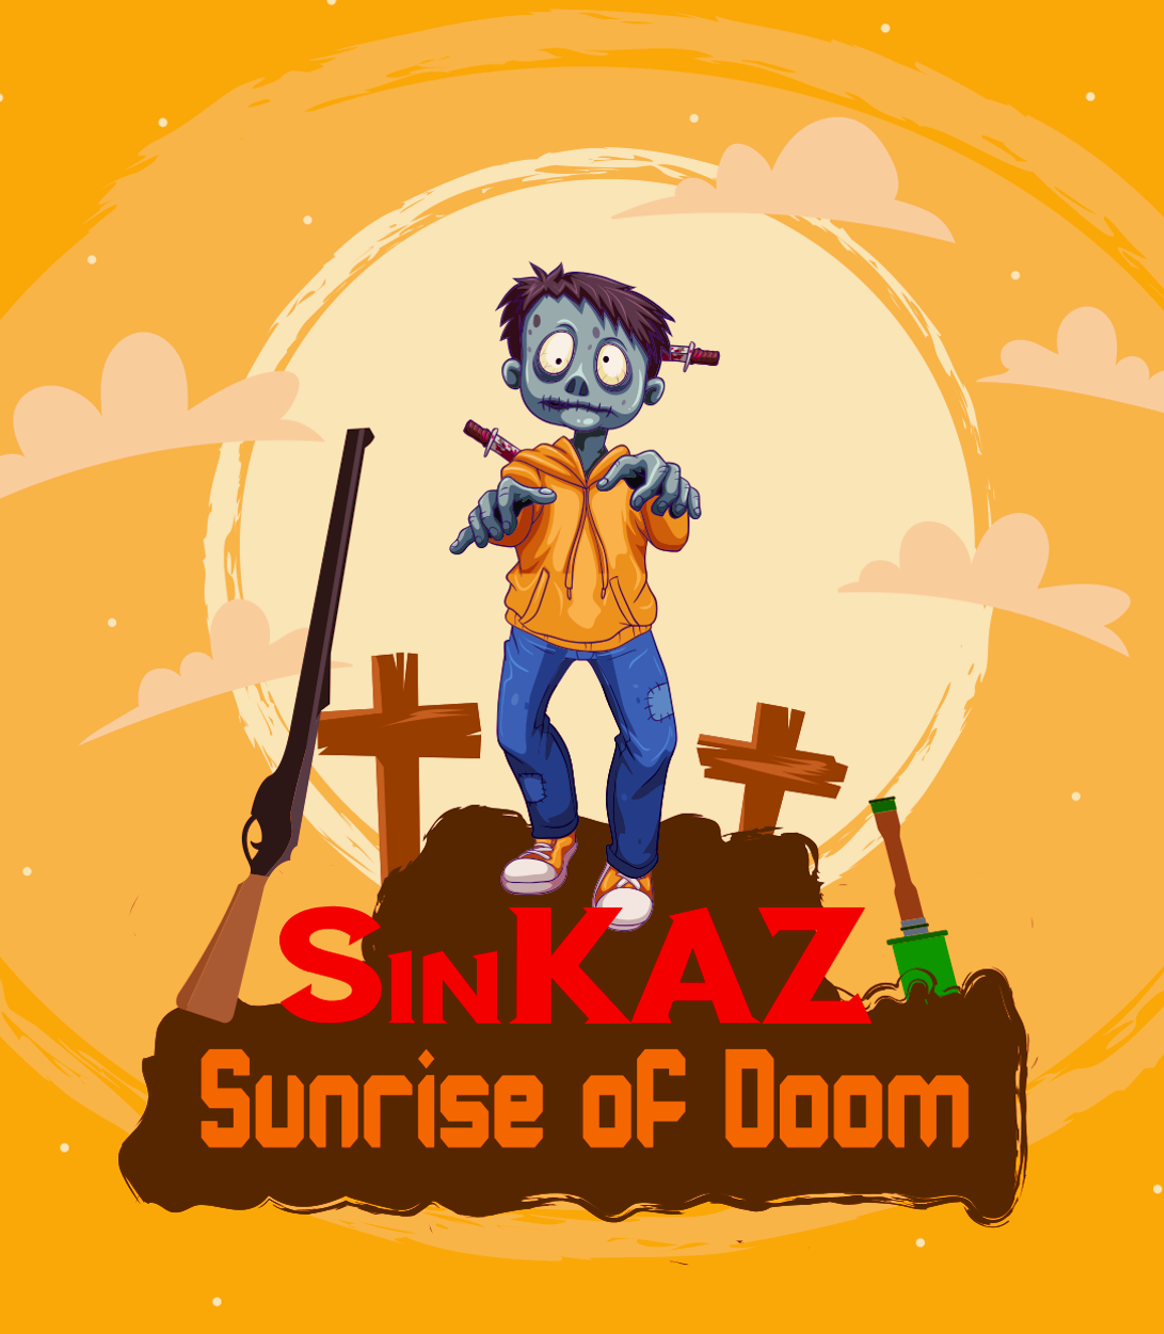 SinKAZcover.png